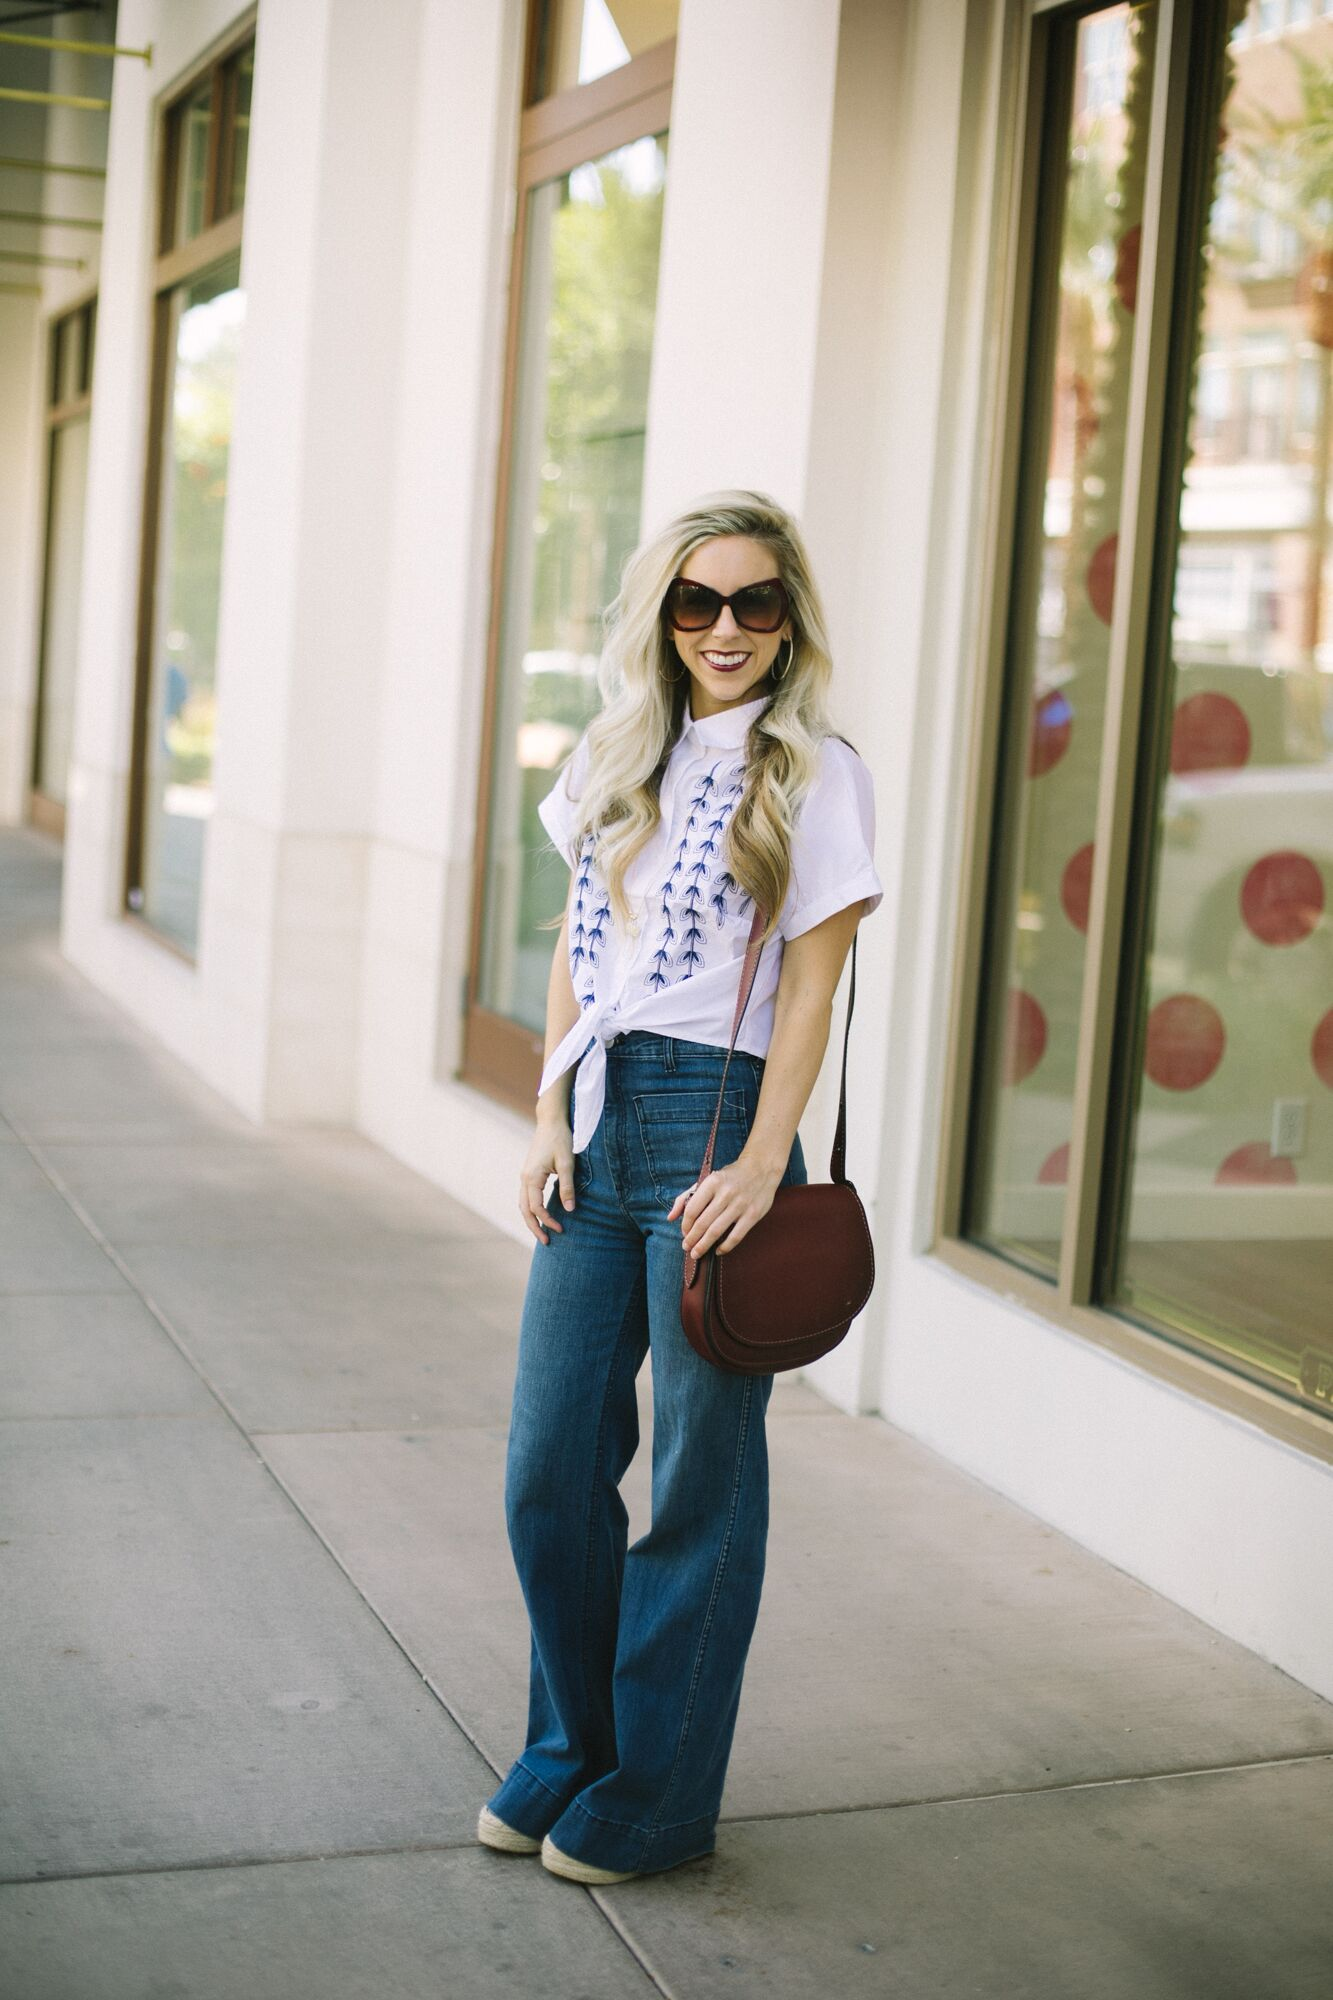 Something you may not know: Accident Prone by Las Vegas lifestyle bloggers Life of a Sister